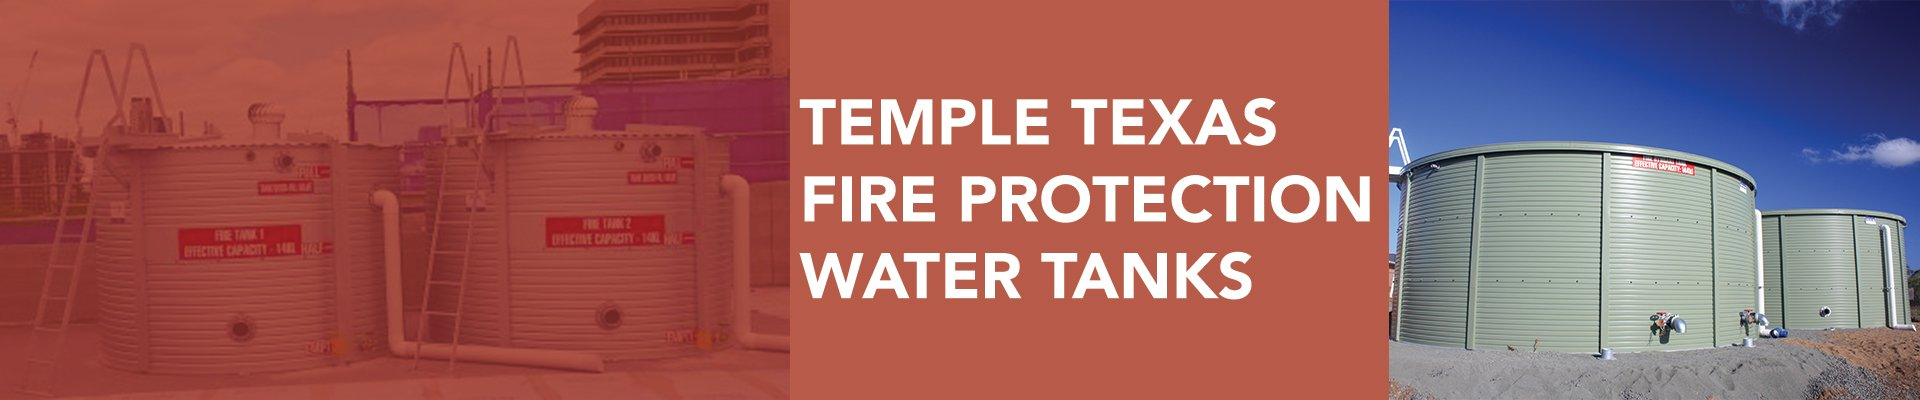 Temple Texas fire protection water tanks